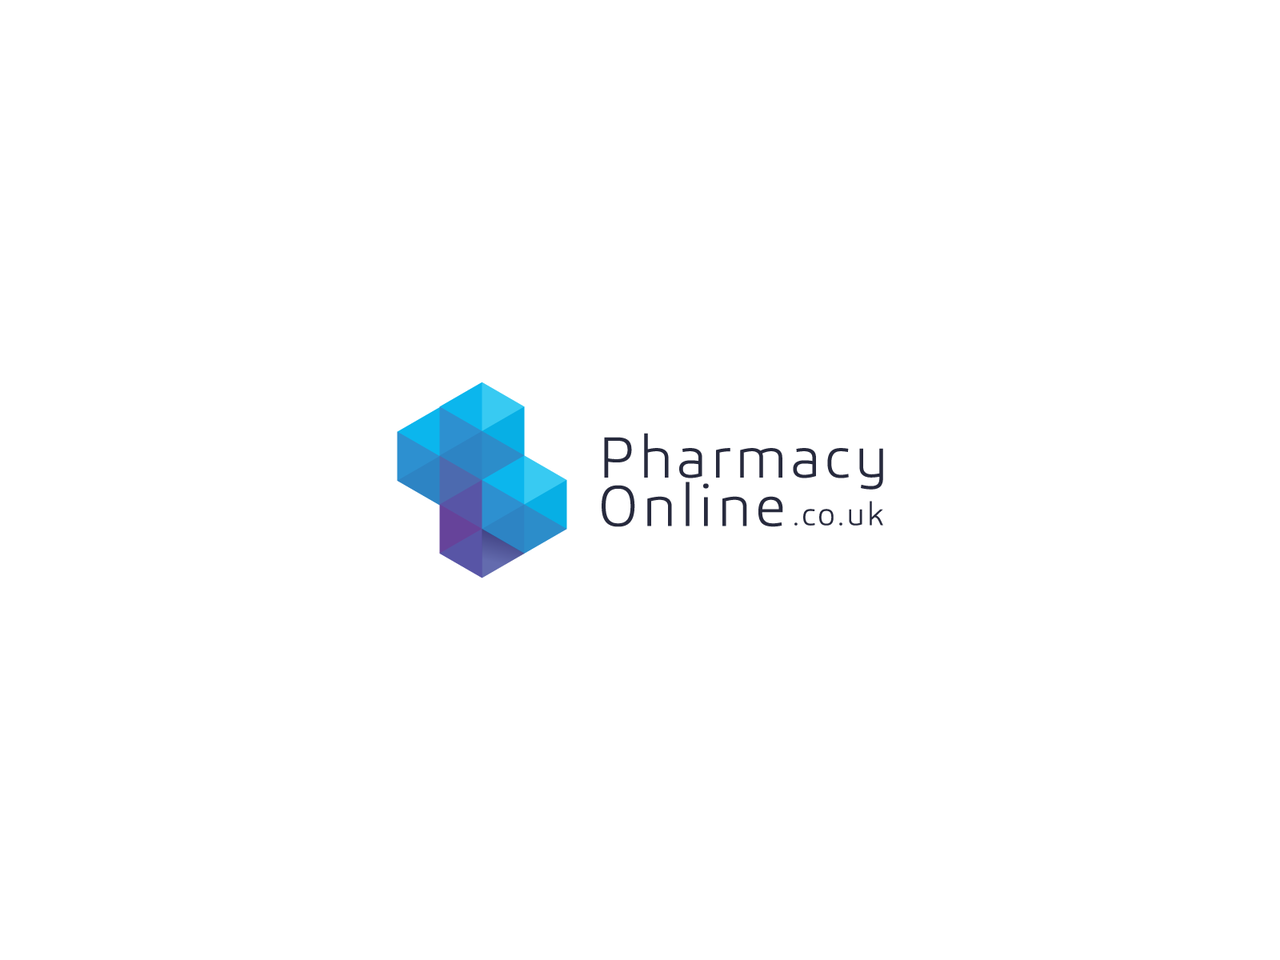 Geometric blue gradient pharmacy logo design